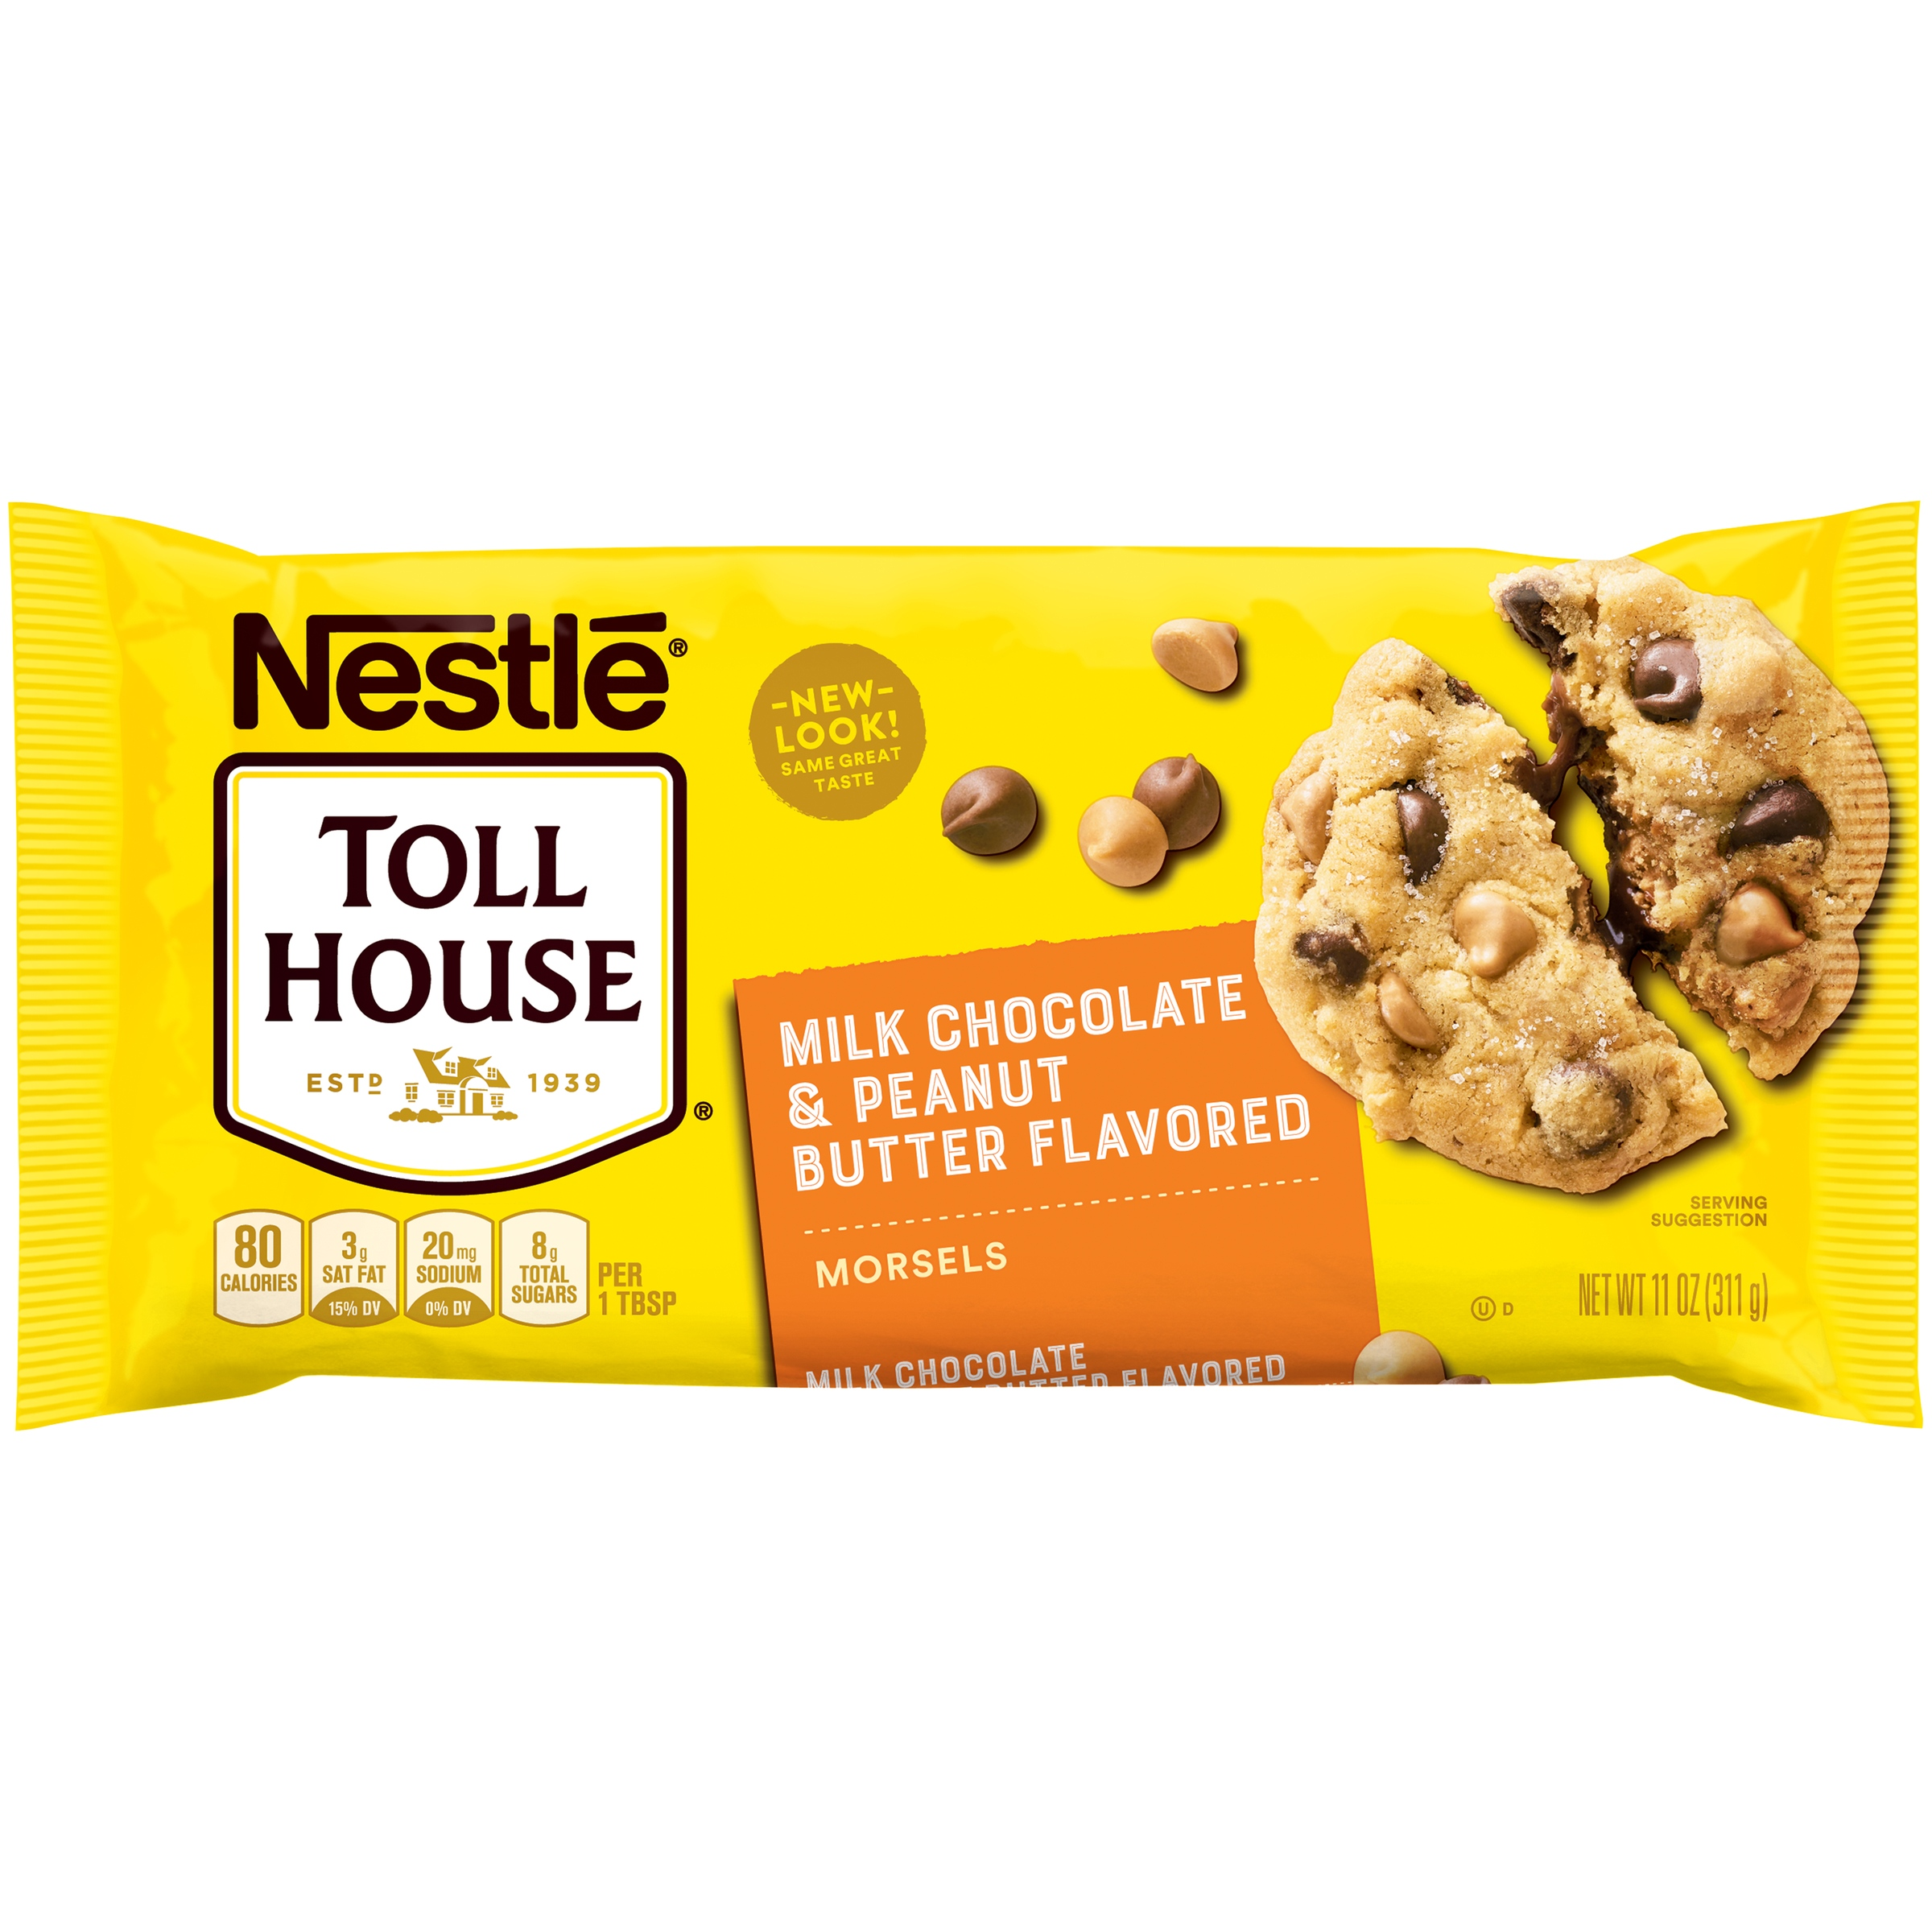 NESTLE TOLL HOUSE Milk Chocolate & Peanut Butter Morsels 11 oz. Bag